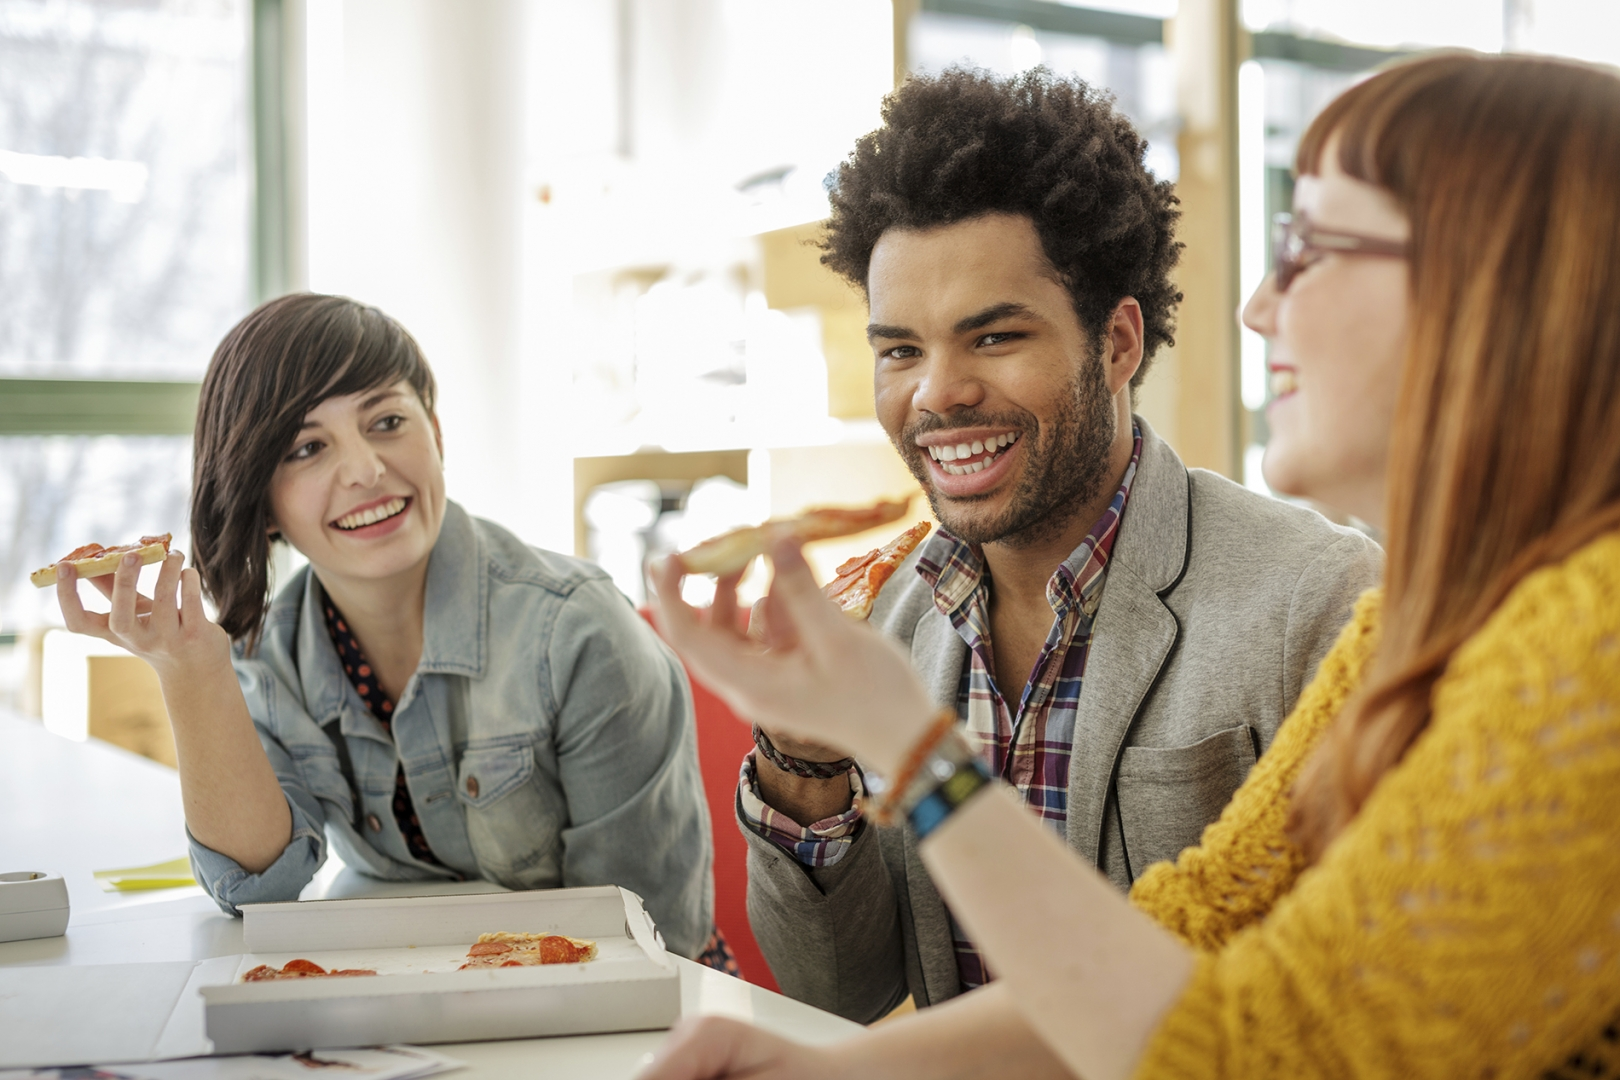 millennials enjoying pizza at a fast casual restaurant